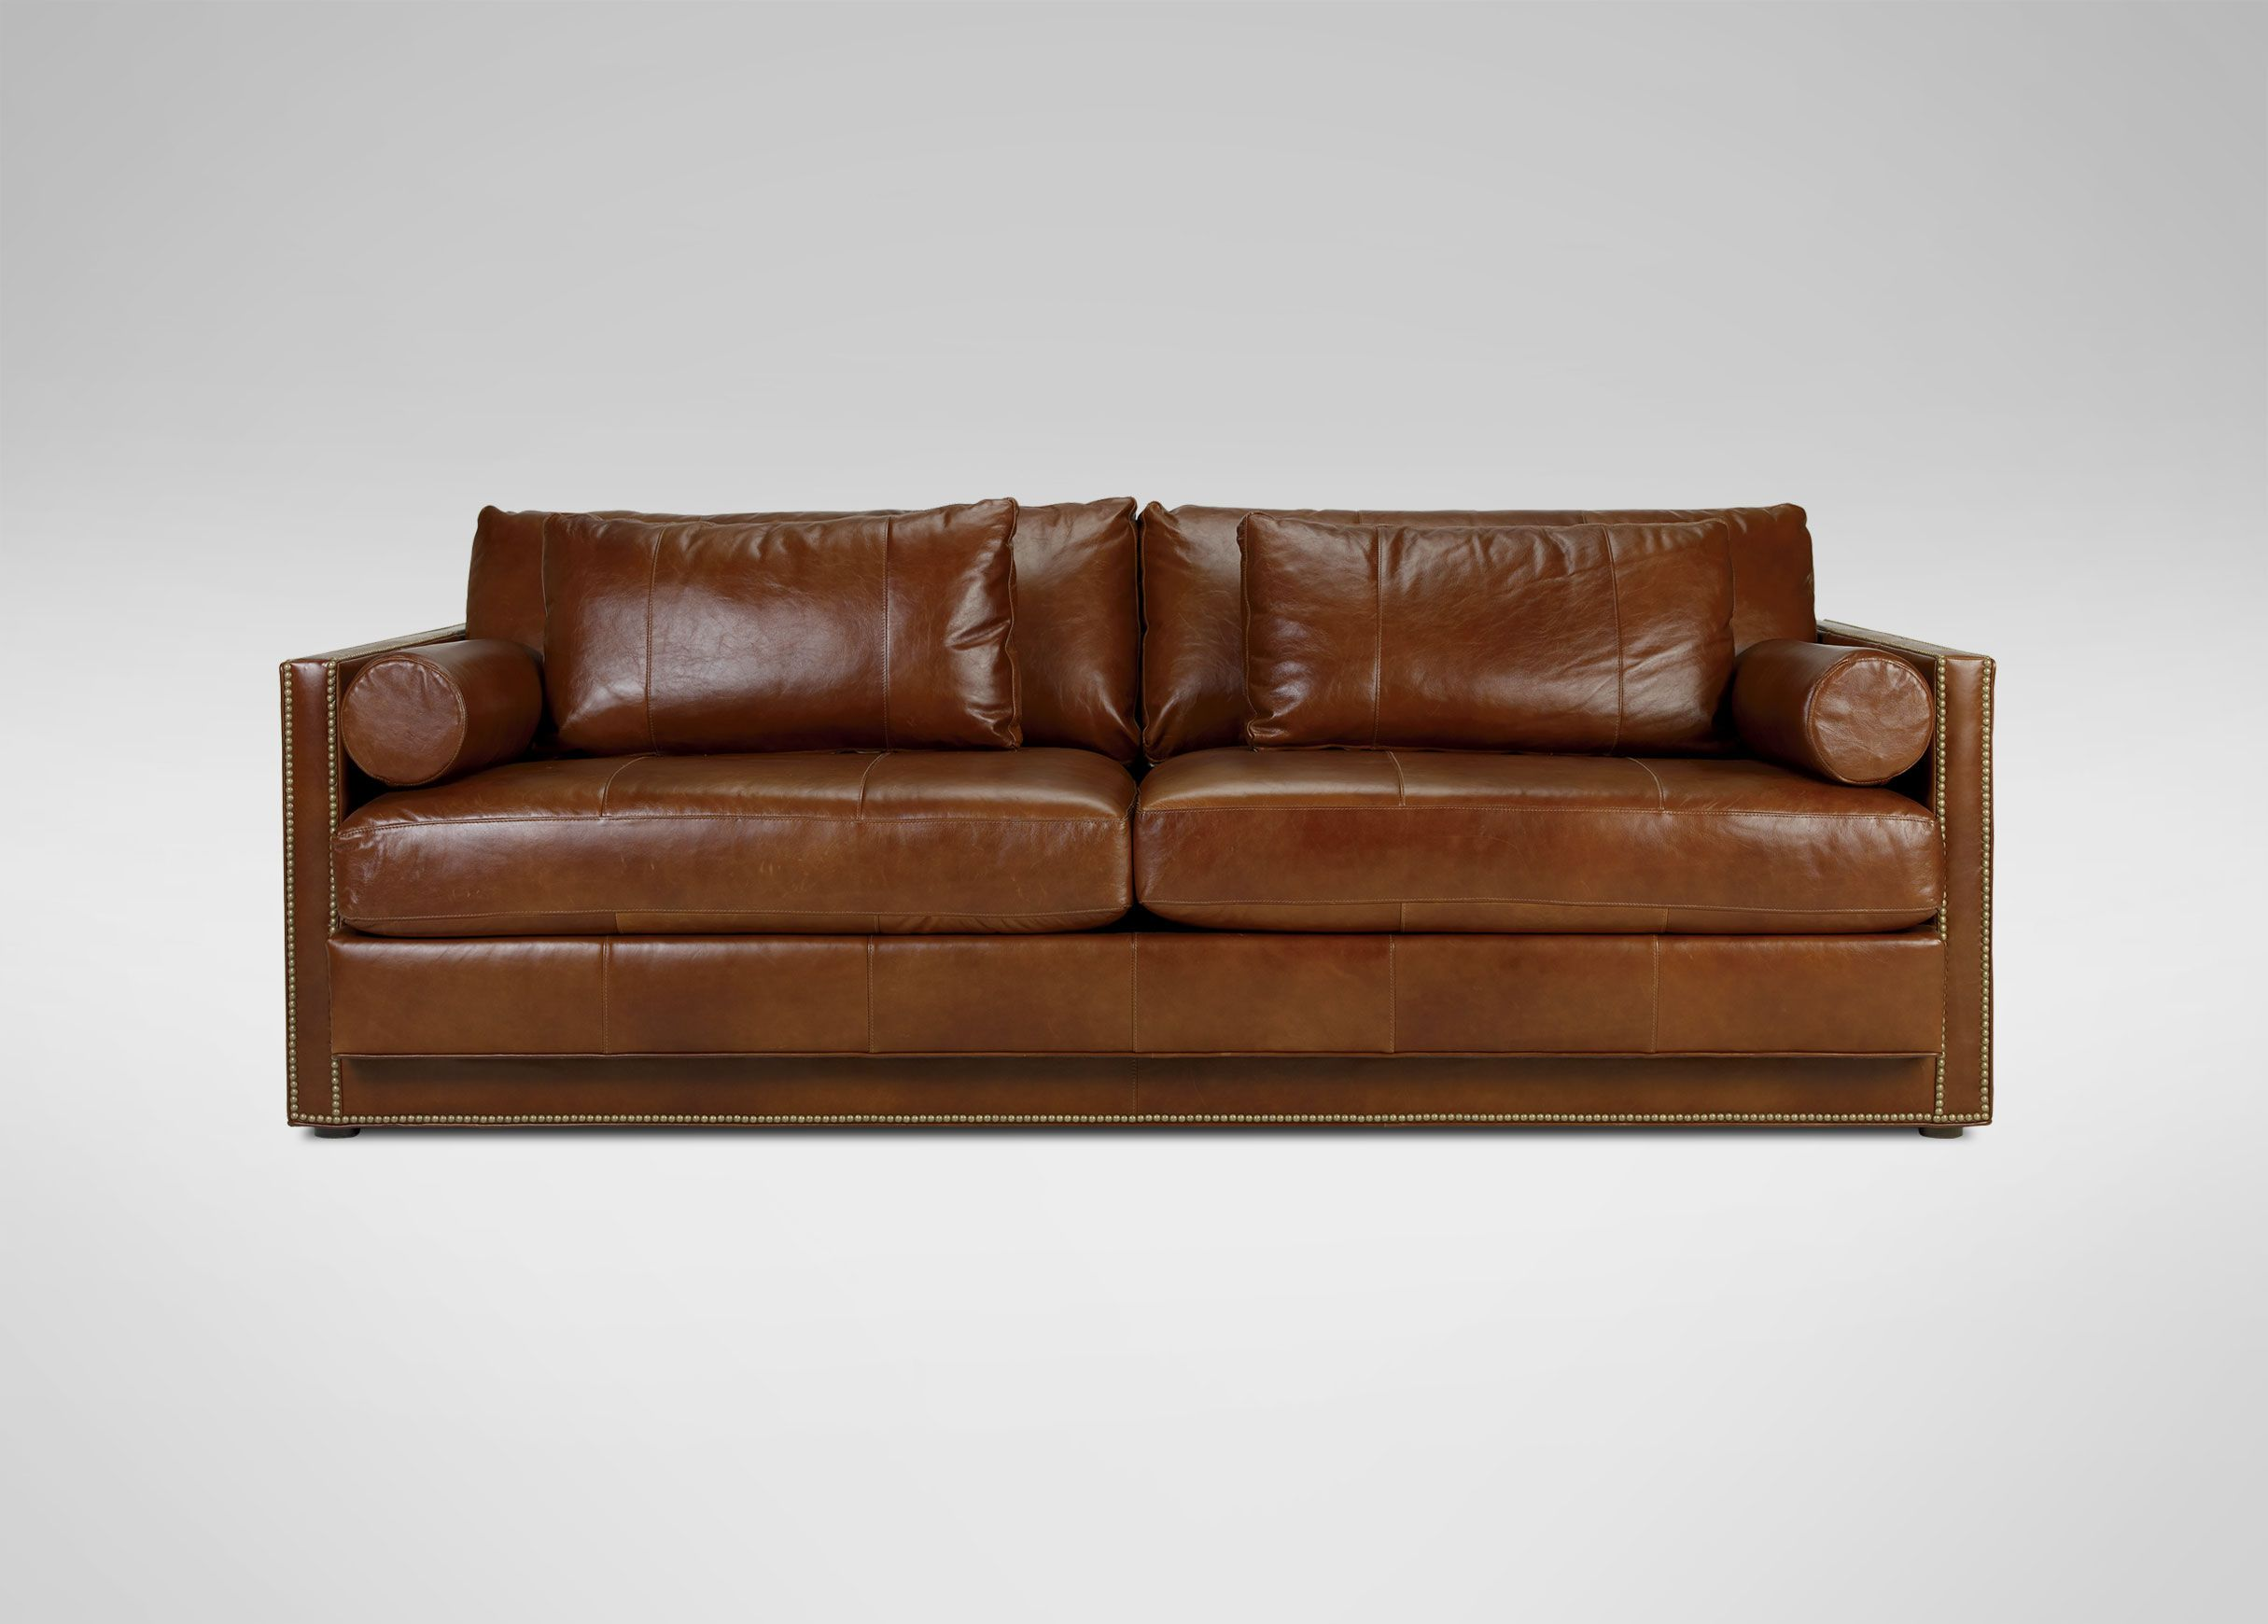 Abington Leather Sofa Ethan Allen 93 W X 36 H 41 D